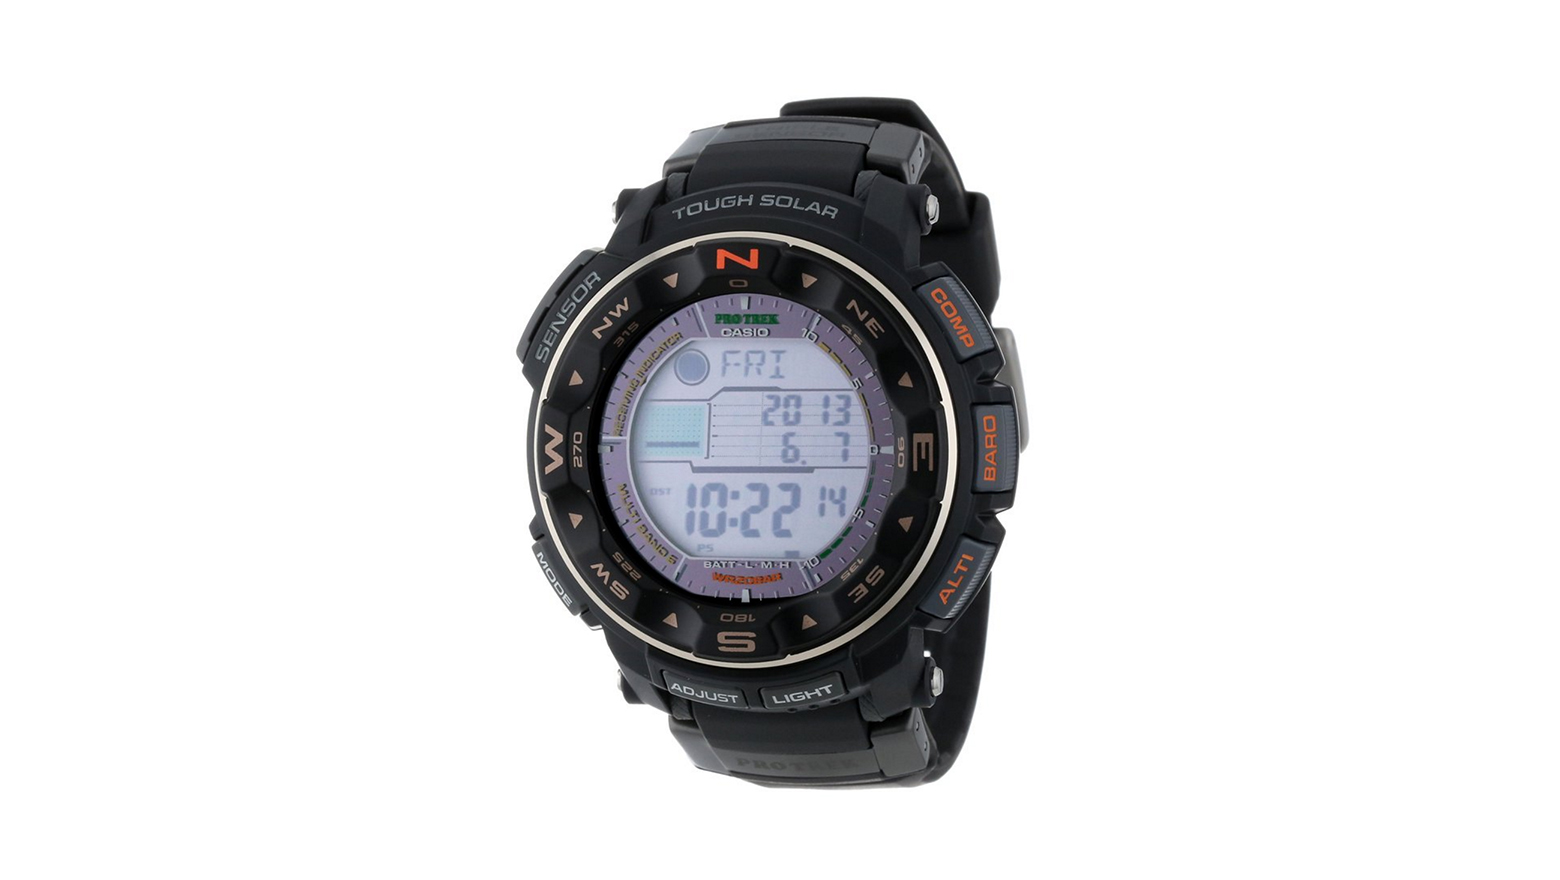 Amazon, cyber monday, cyber monday sales, cyber Monday, watches, mens watches, watches for men, casio, casio watches